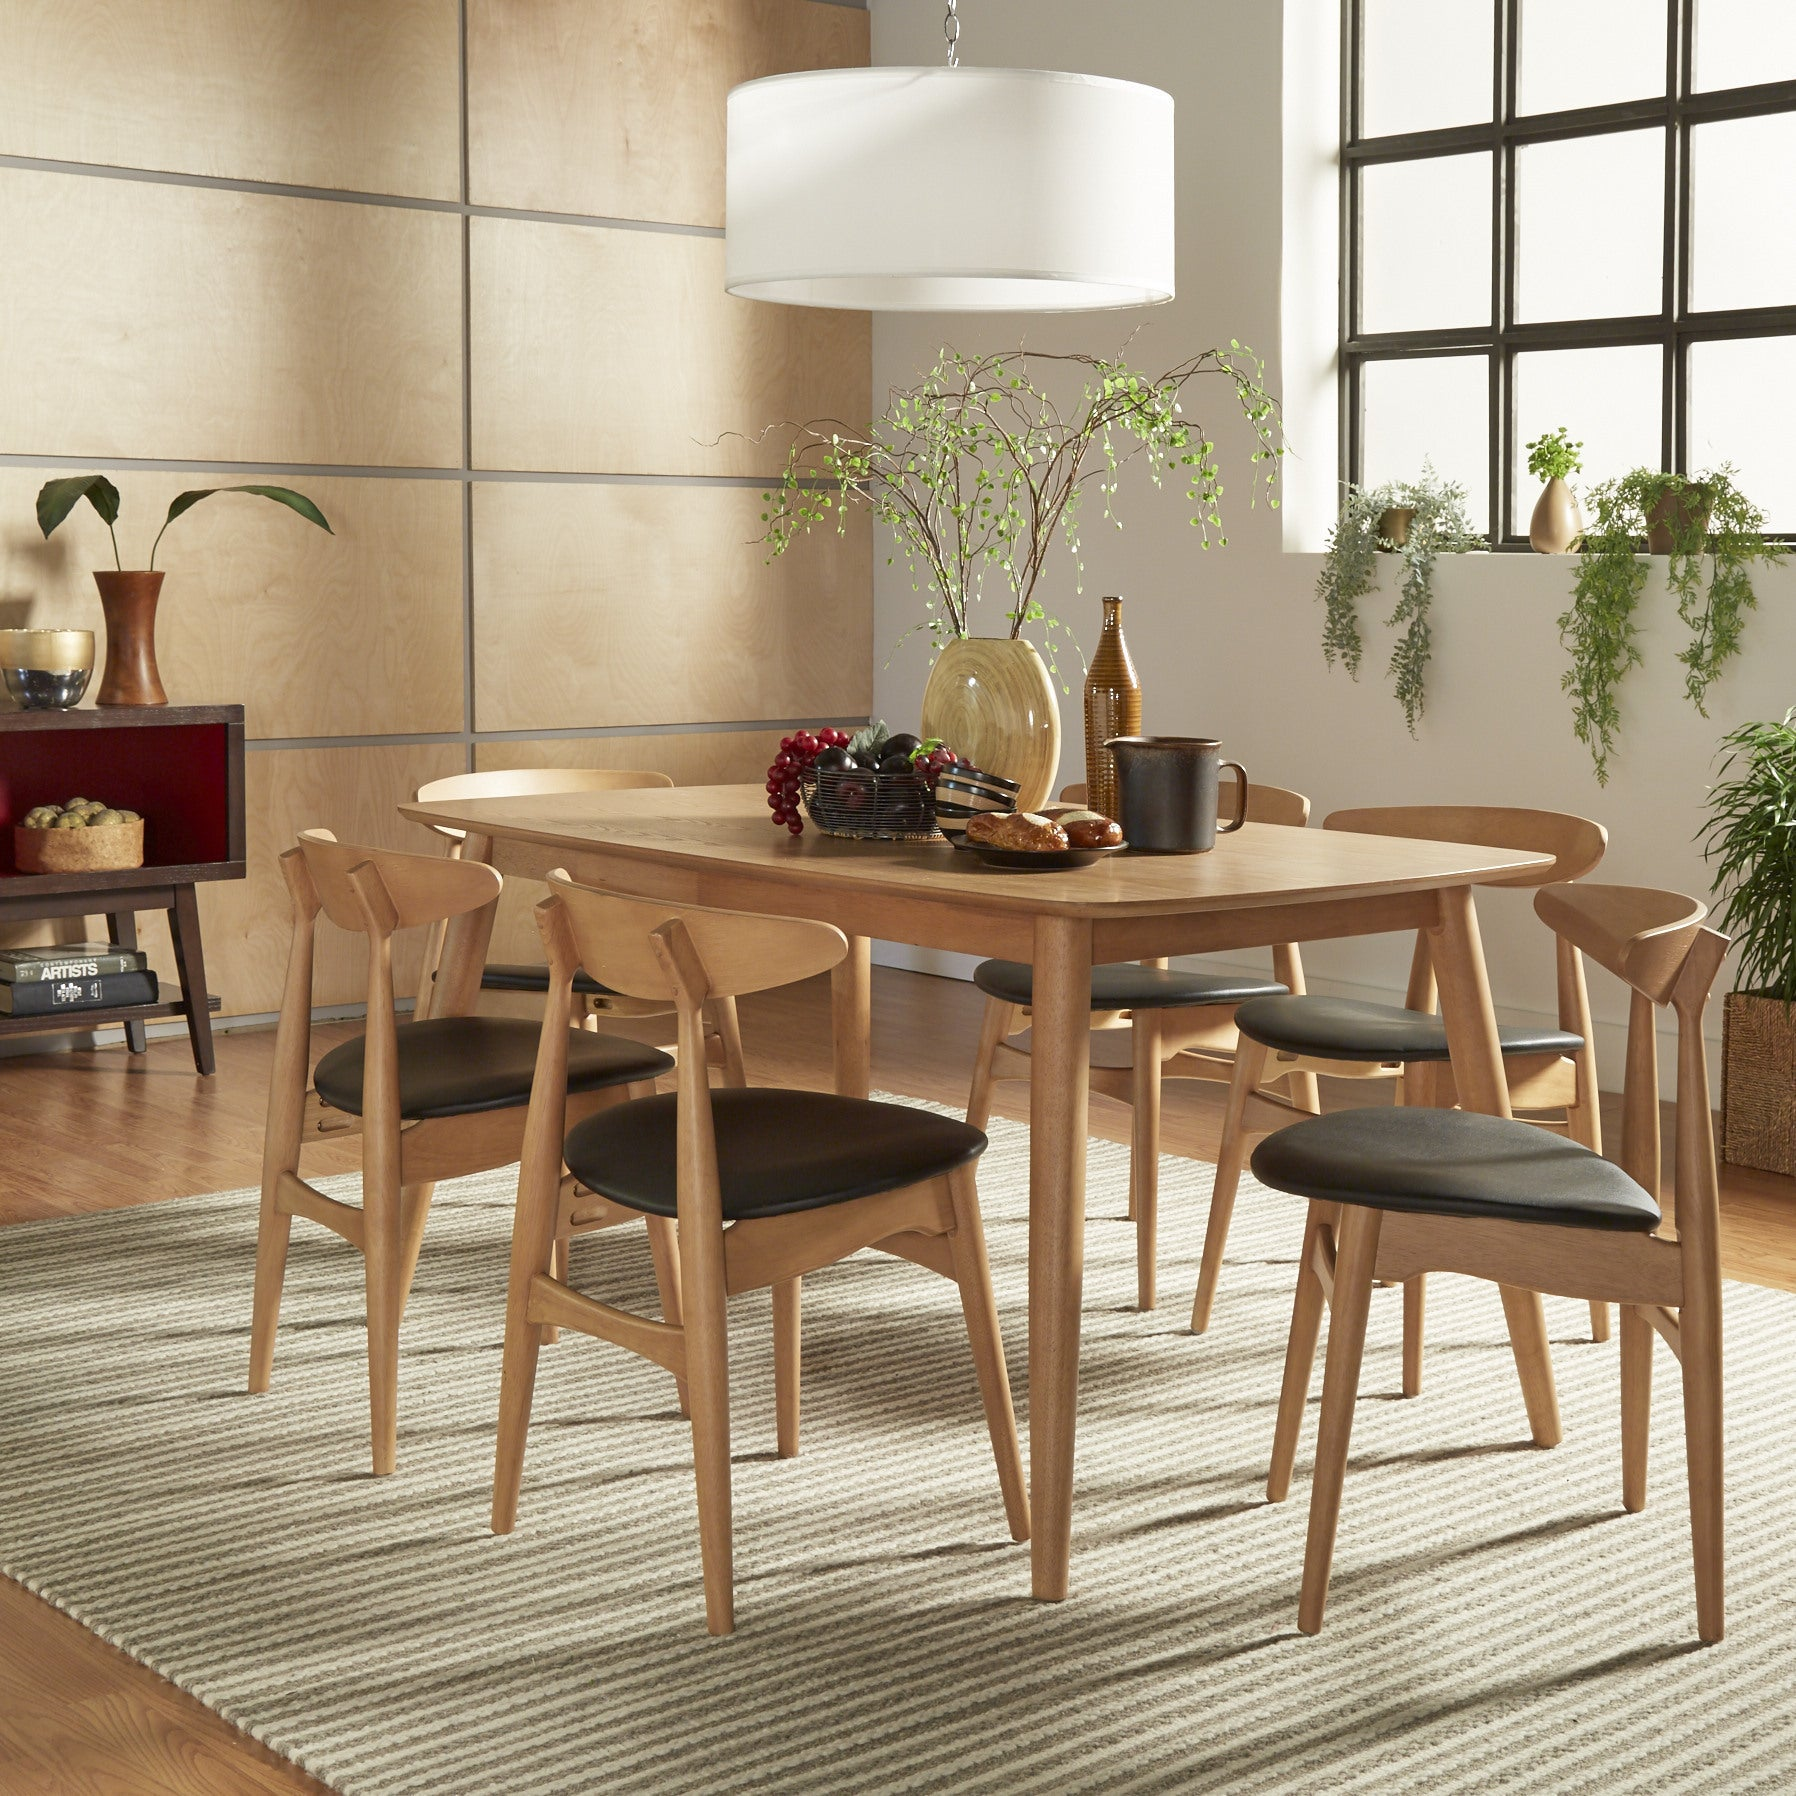 Norwegian Danish Modern Oak Tapered Dining Set iNSPIRE Q ...